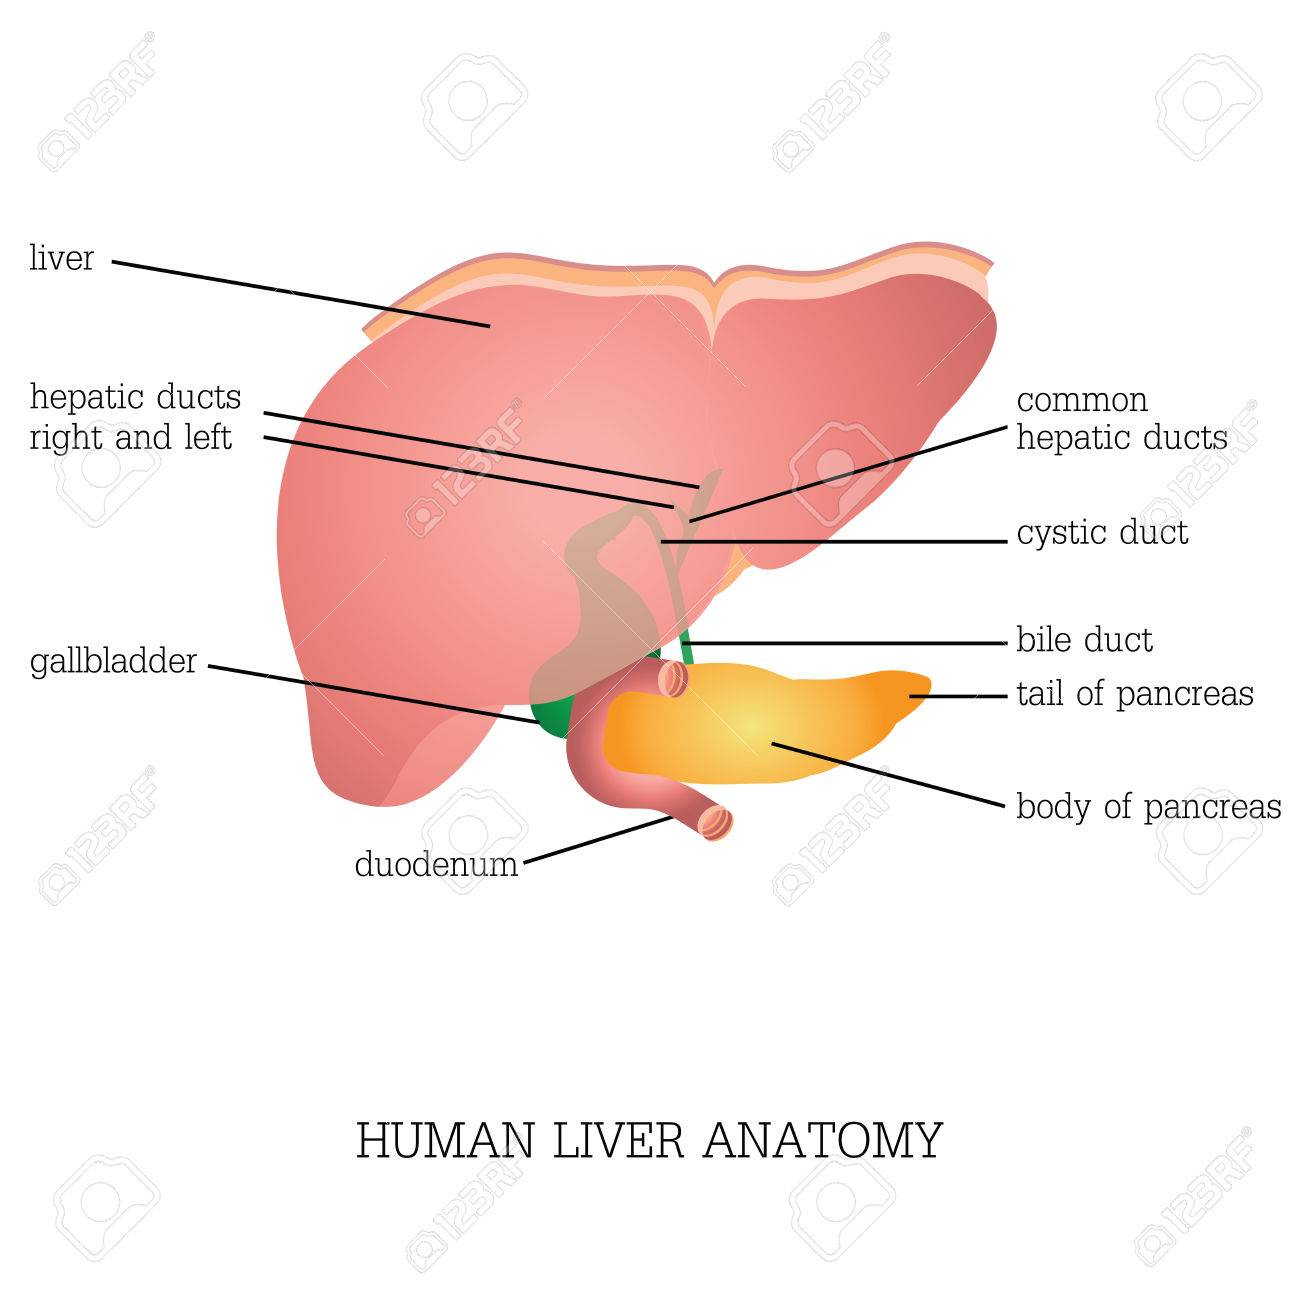 Structure And Function Of Human Liver Anatomy System Isolated